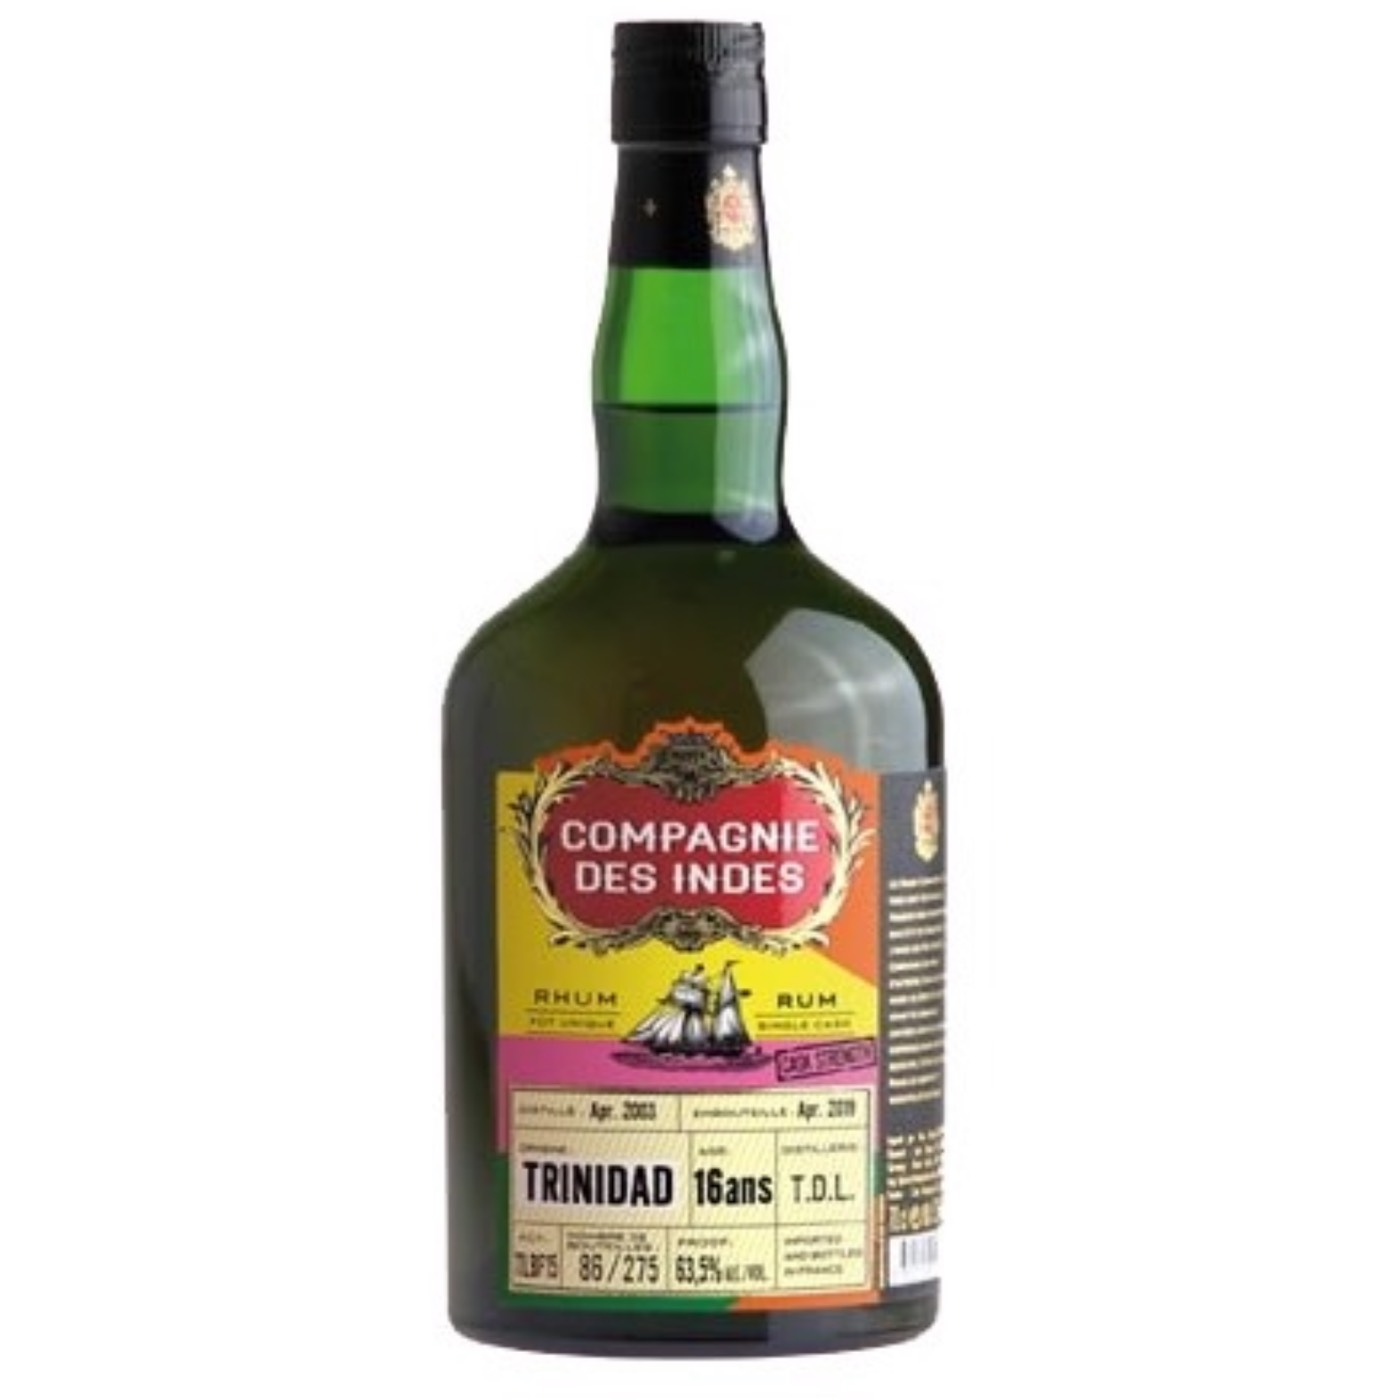 Bottle image of Trinidad